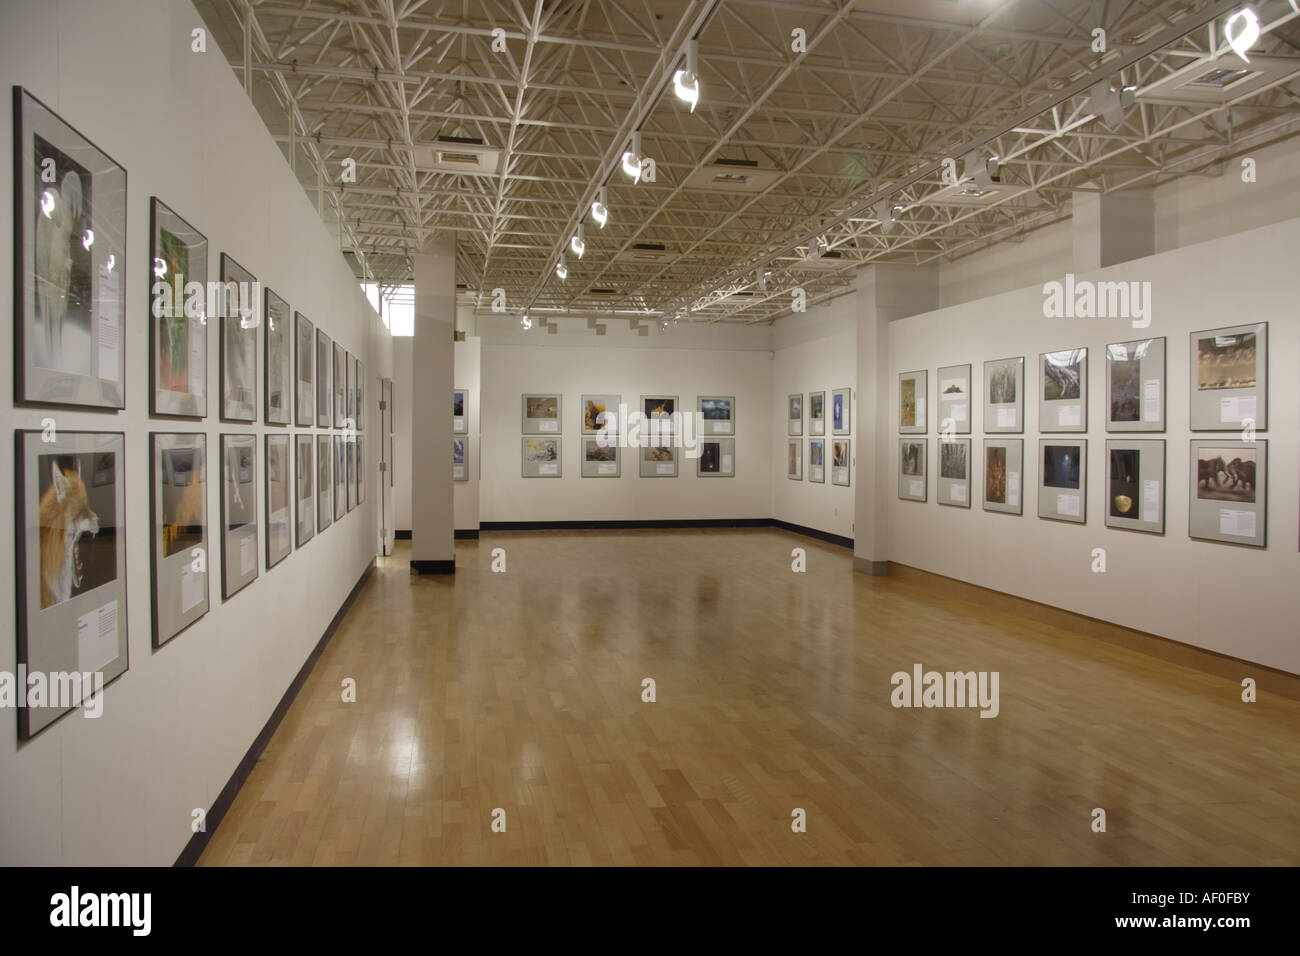 Art Gallery Aberystwyth Arts Centre West Wales UK Stock Photo